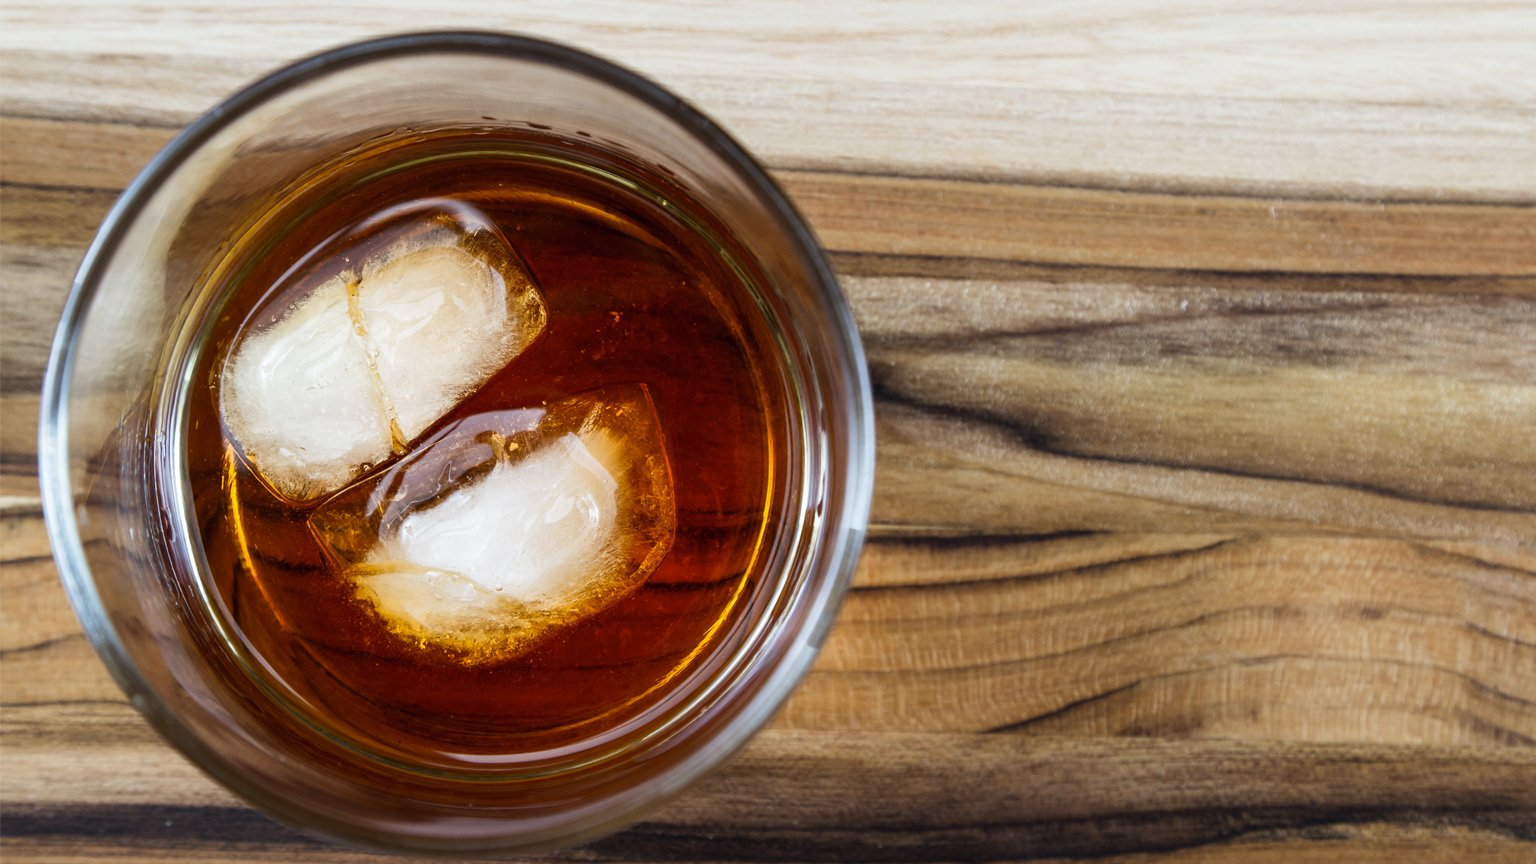 A glass of bourbon with two ice cubes.